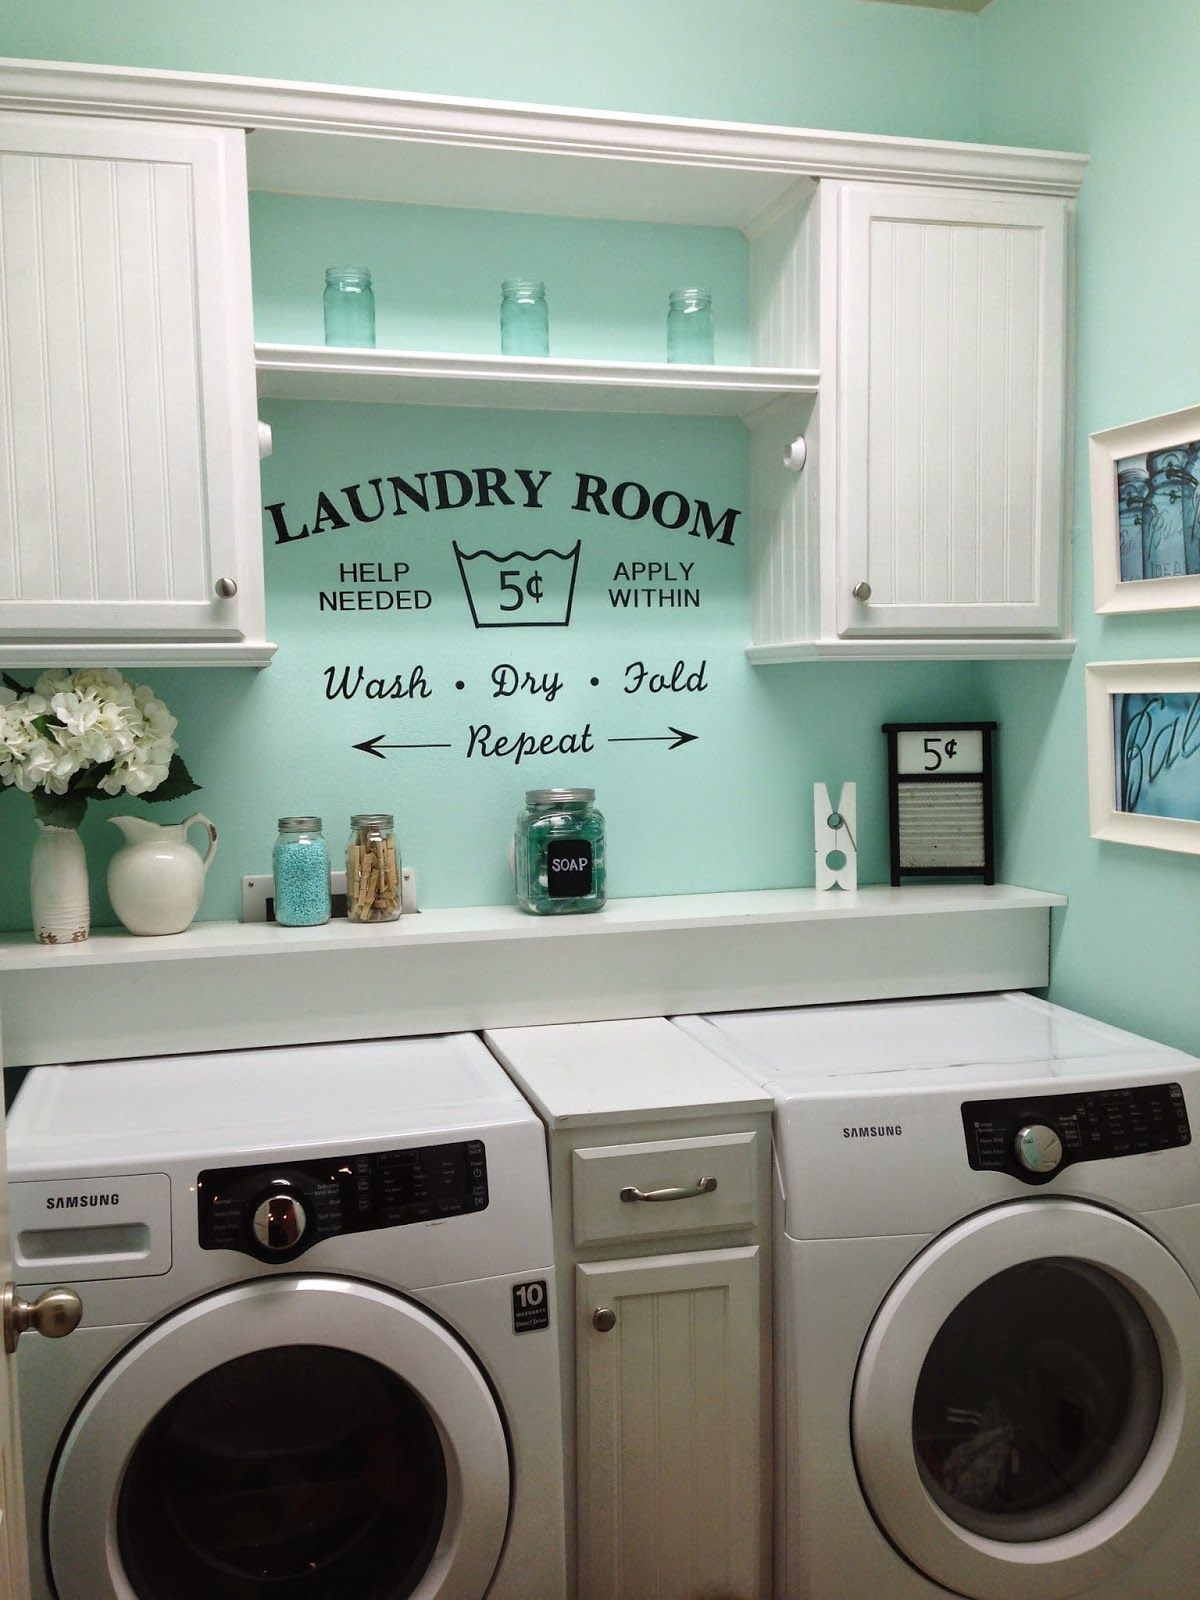 Quick and easy DIY country chic Laundry Room Decor Ideas that will take your dreary utility room up a notch with vibrant color and design